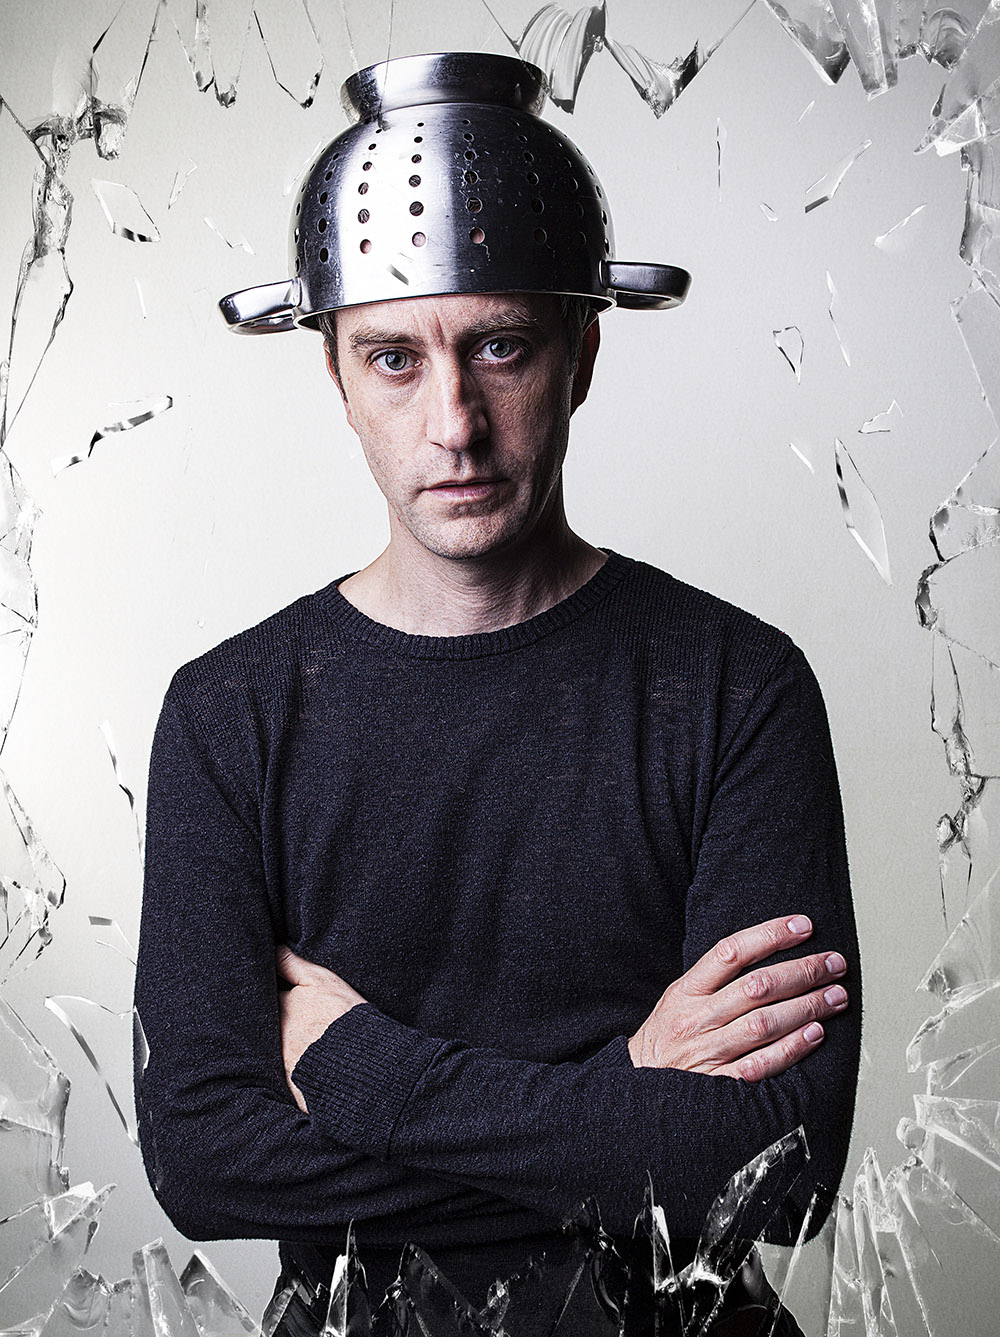 Actor Haedshot of Man with Colander on His Head and a Frame of Broken Glass © Paul Worpole Photography